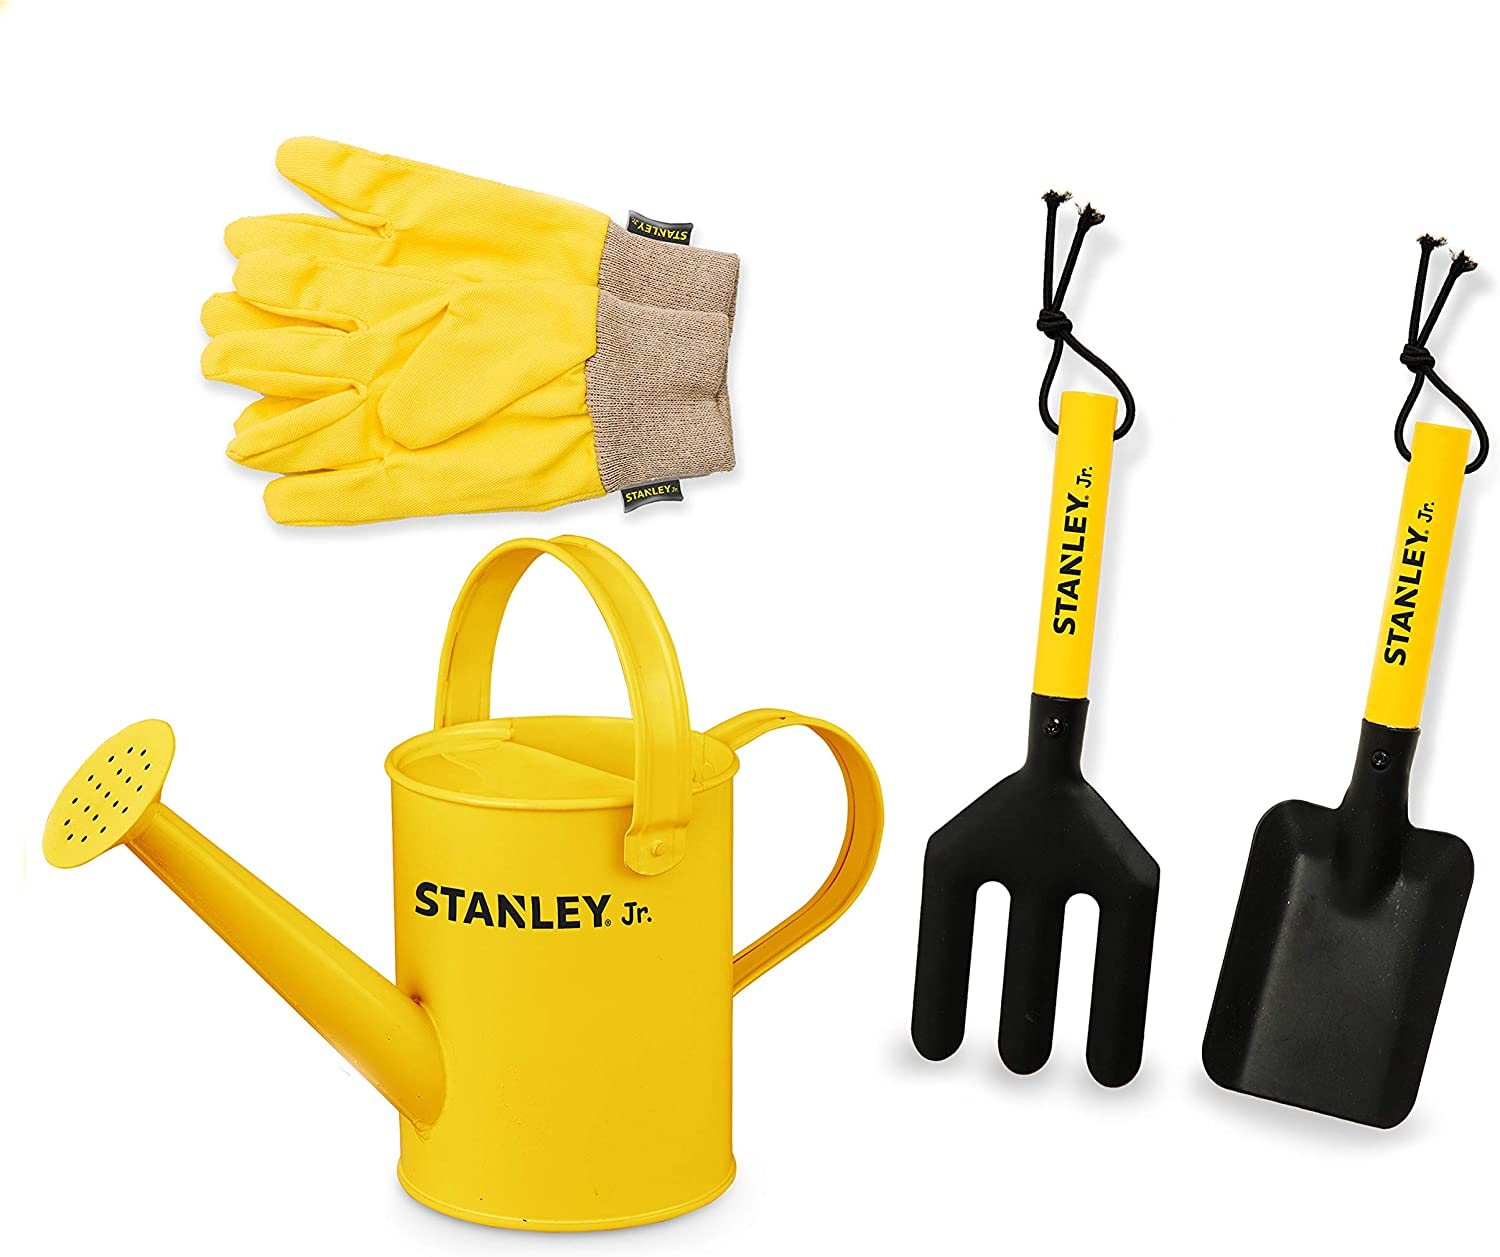 Stanley Jr - 4-Piece Garden Hand Tool Set with Gloves for Kids